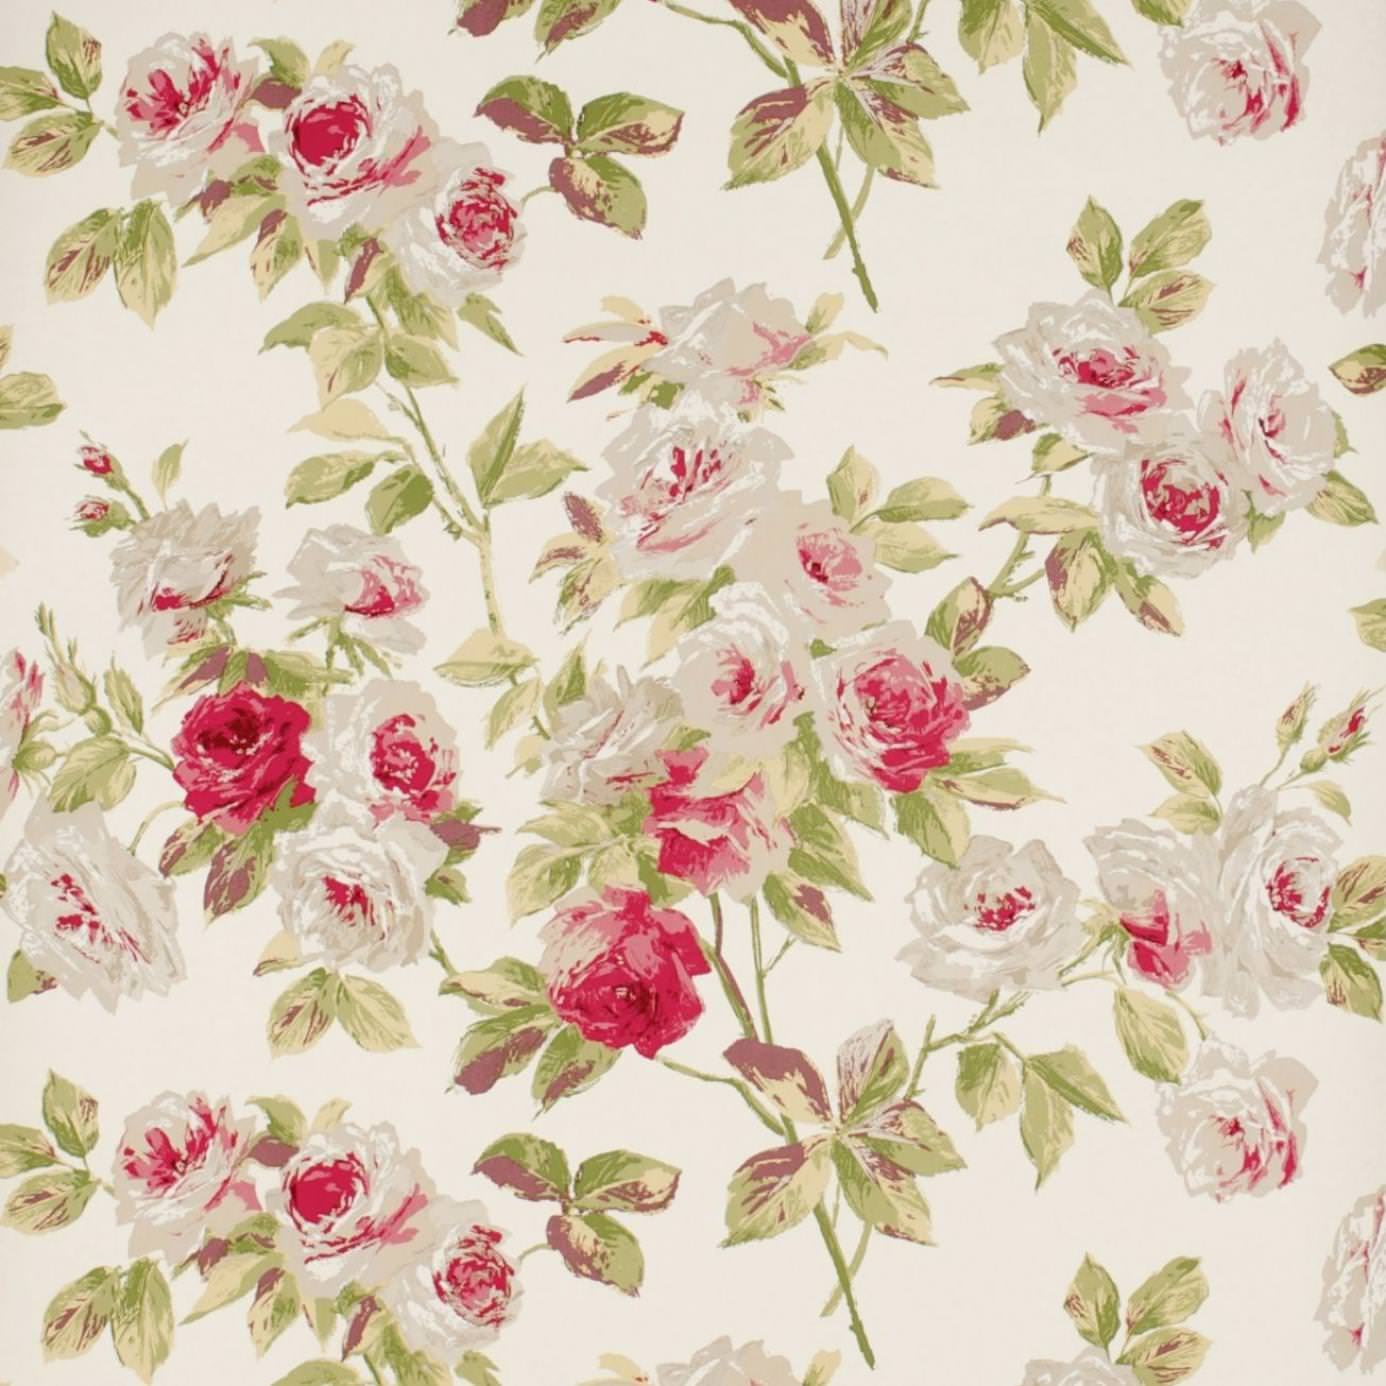 Download 15+ Free Floral Vintage Wallpapers: www.freecreatives.com/backgrounds/floral-vintage-wallpapers.html